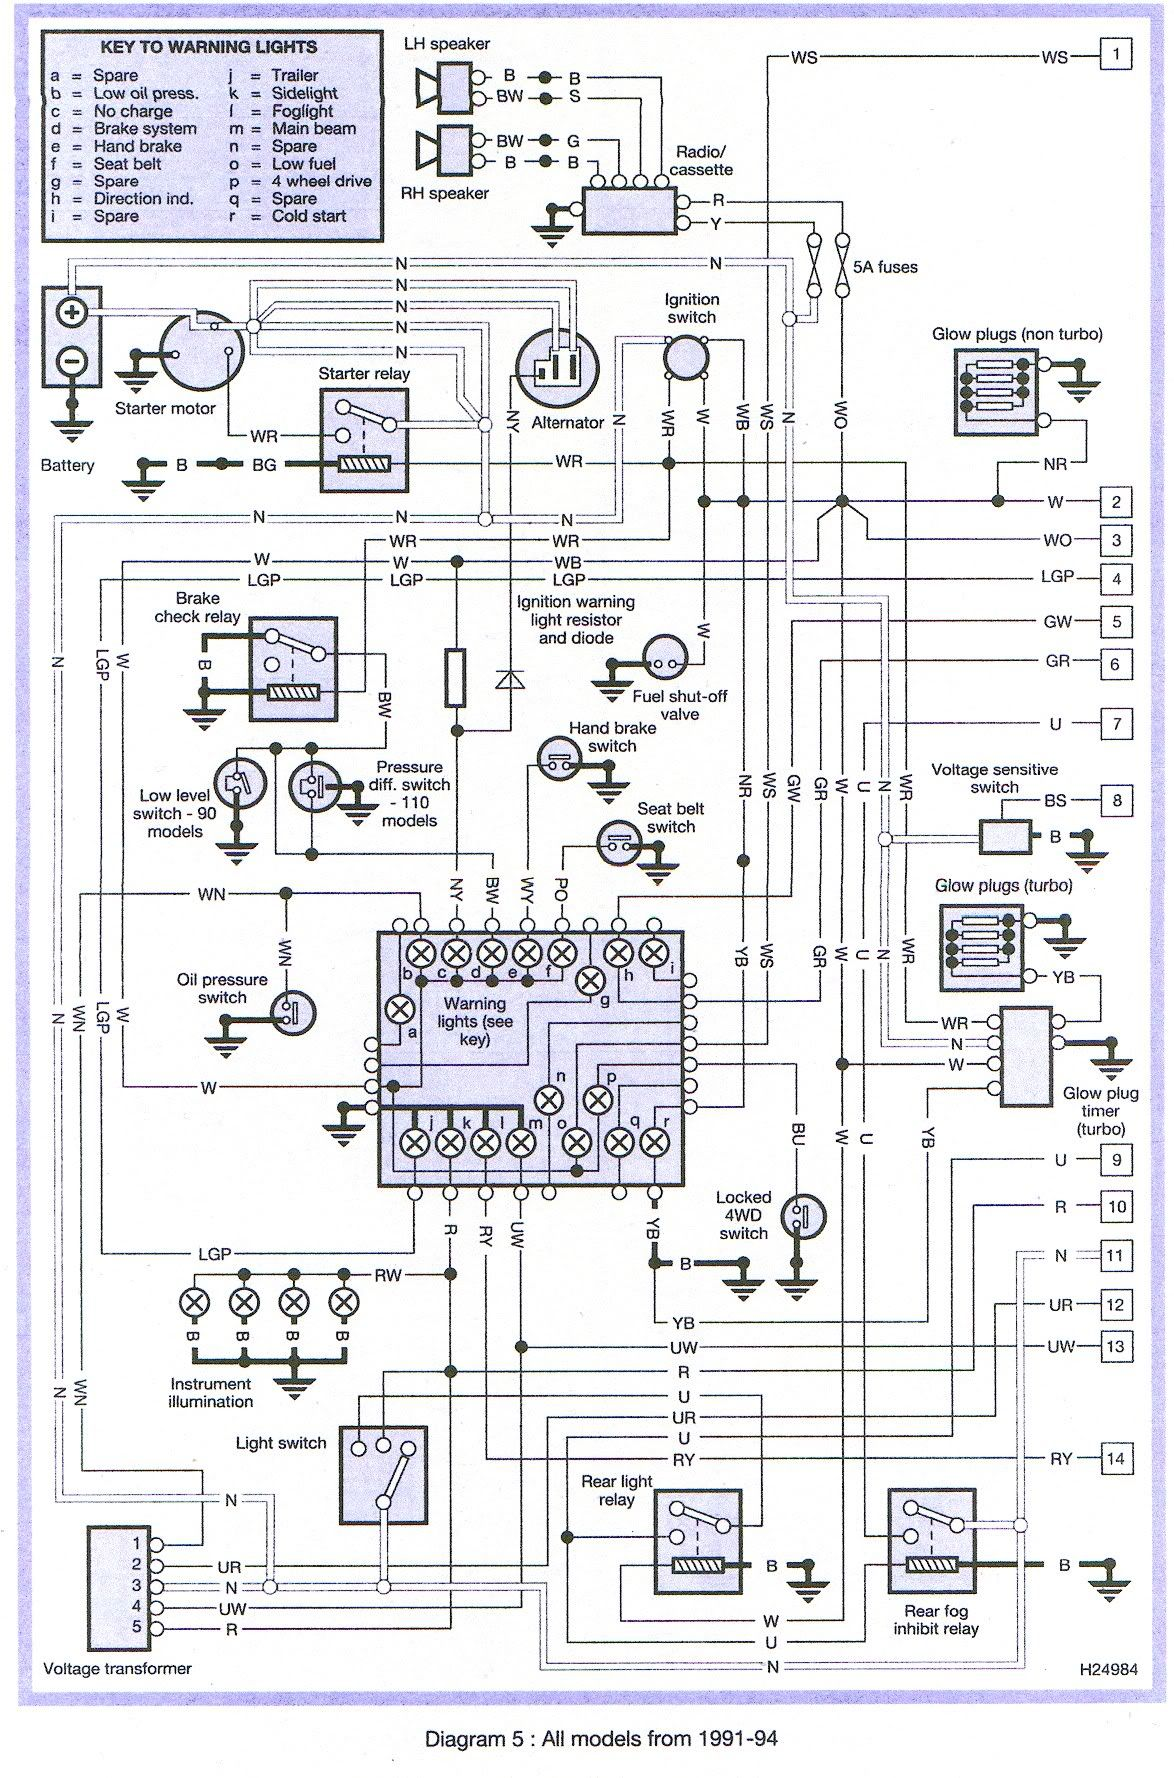 07629544bfff38ad2881b2c21312c6e6 land rover discovery wiring diagram manual repair with engine rover 75 wiring diagram at creativeand.co